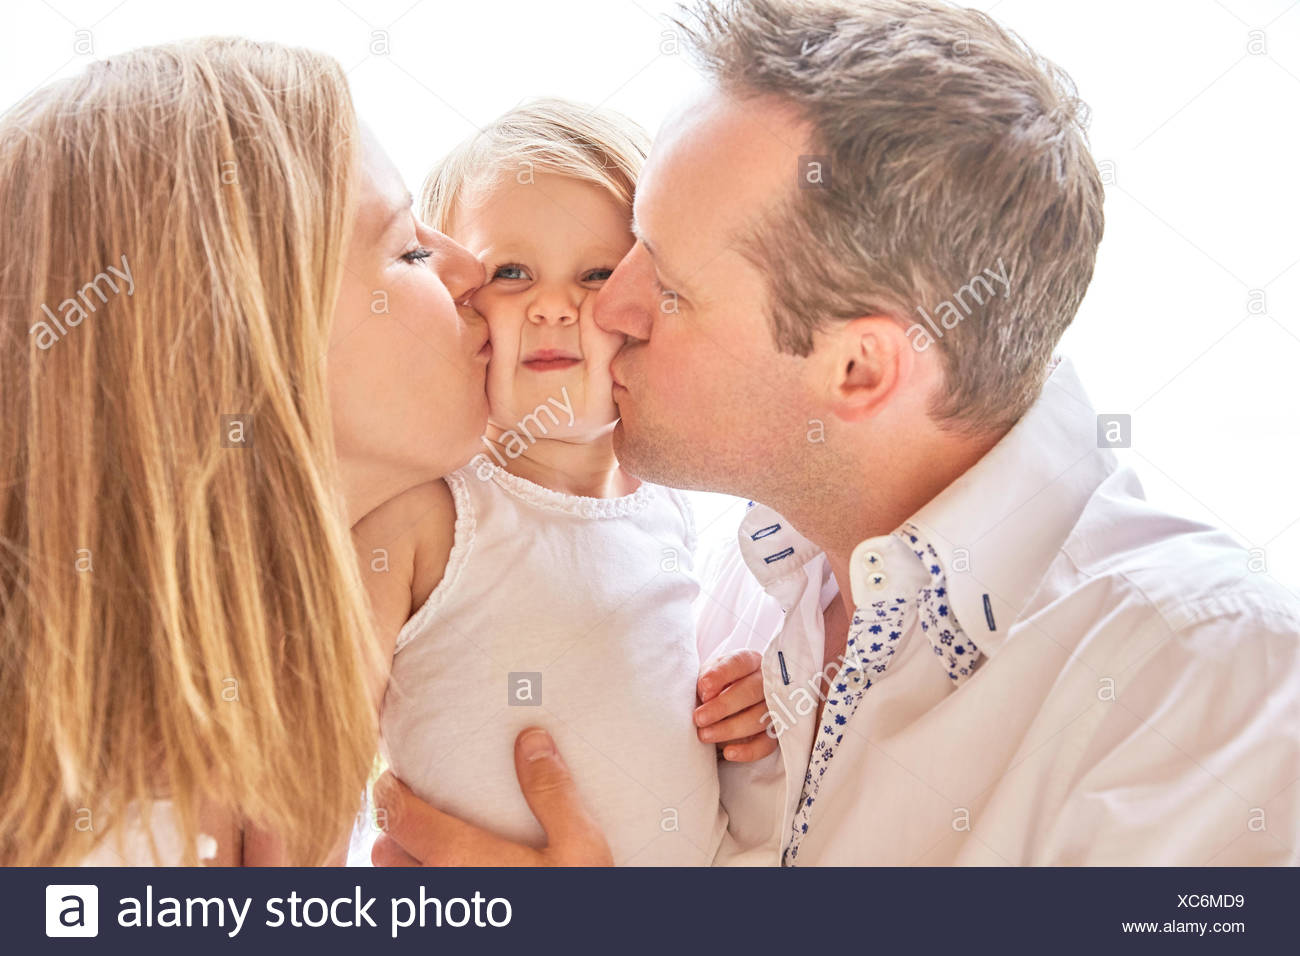 Couple with baby daughter - Stock Image